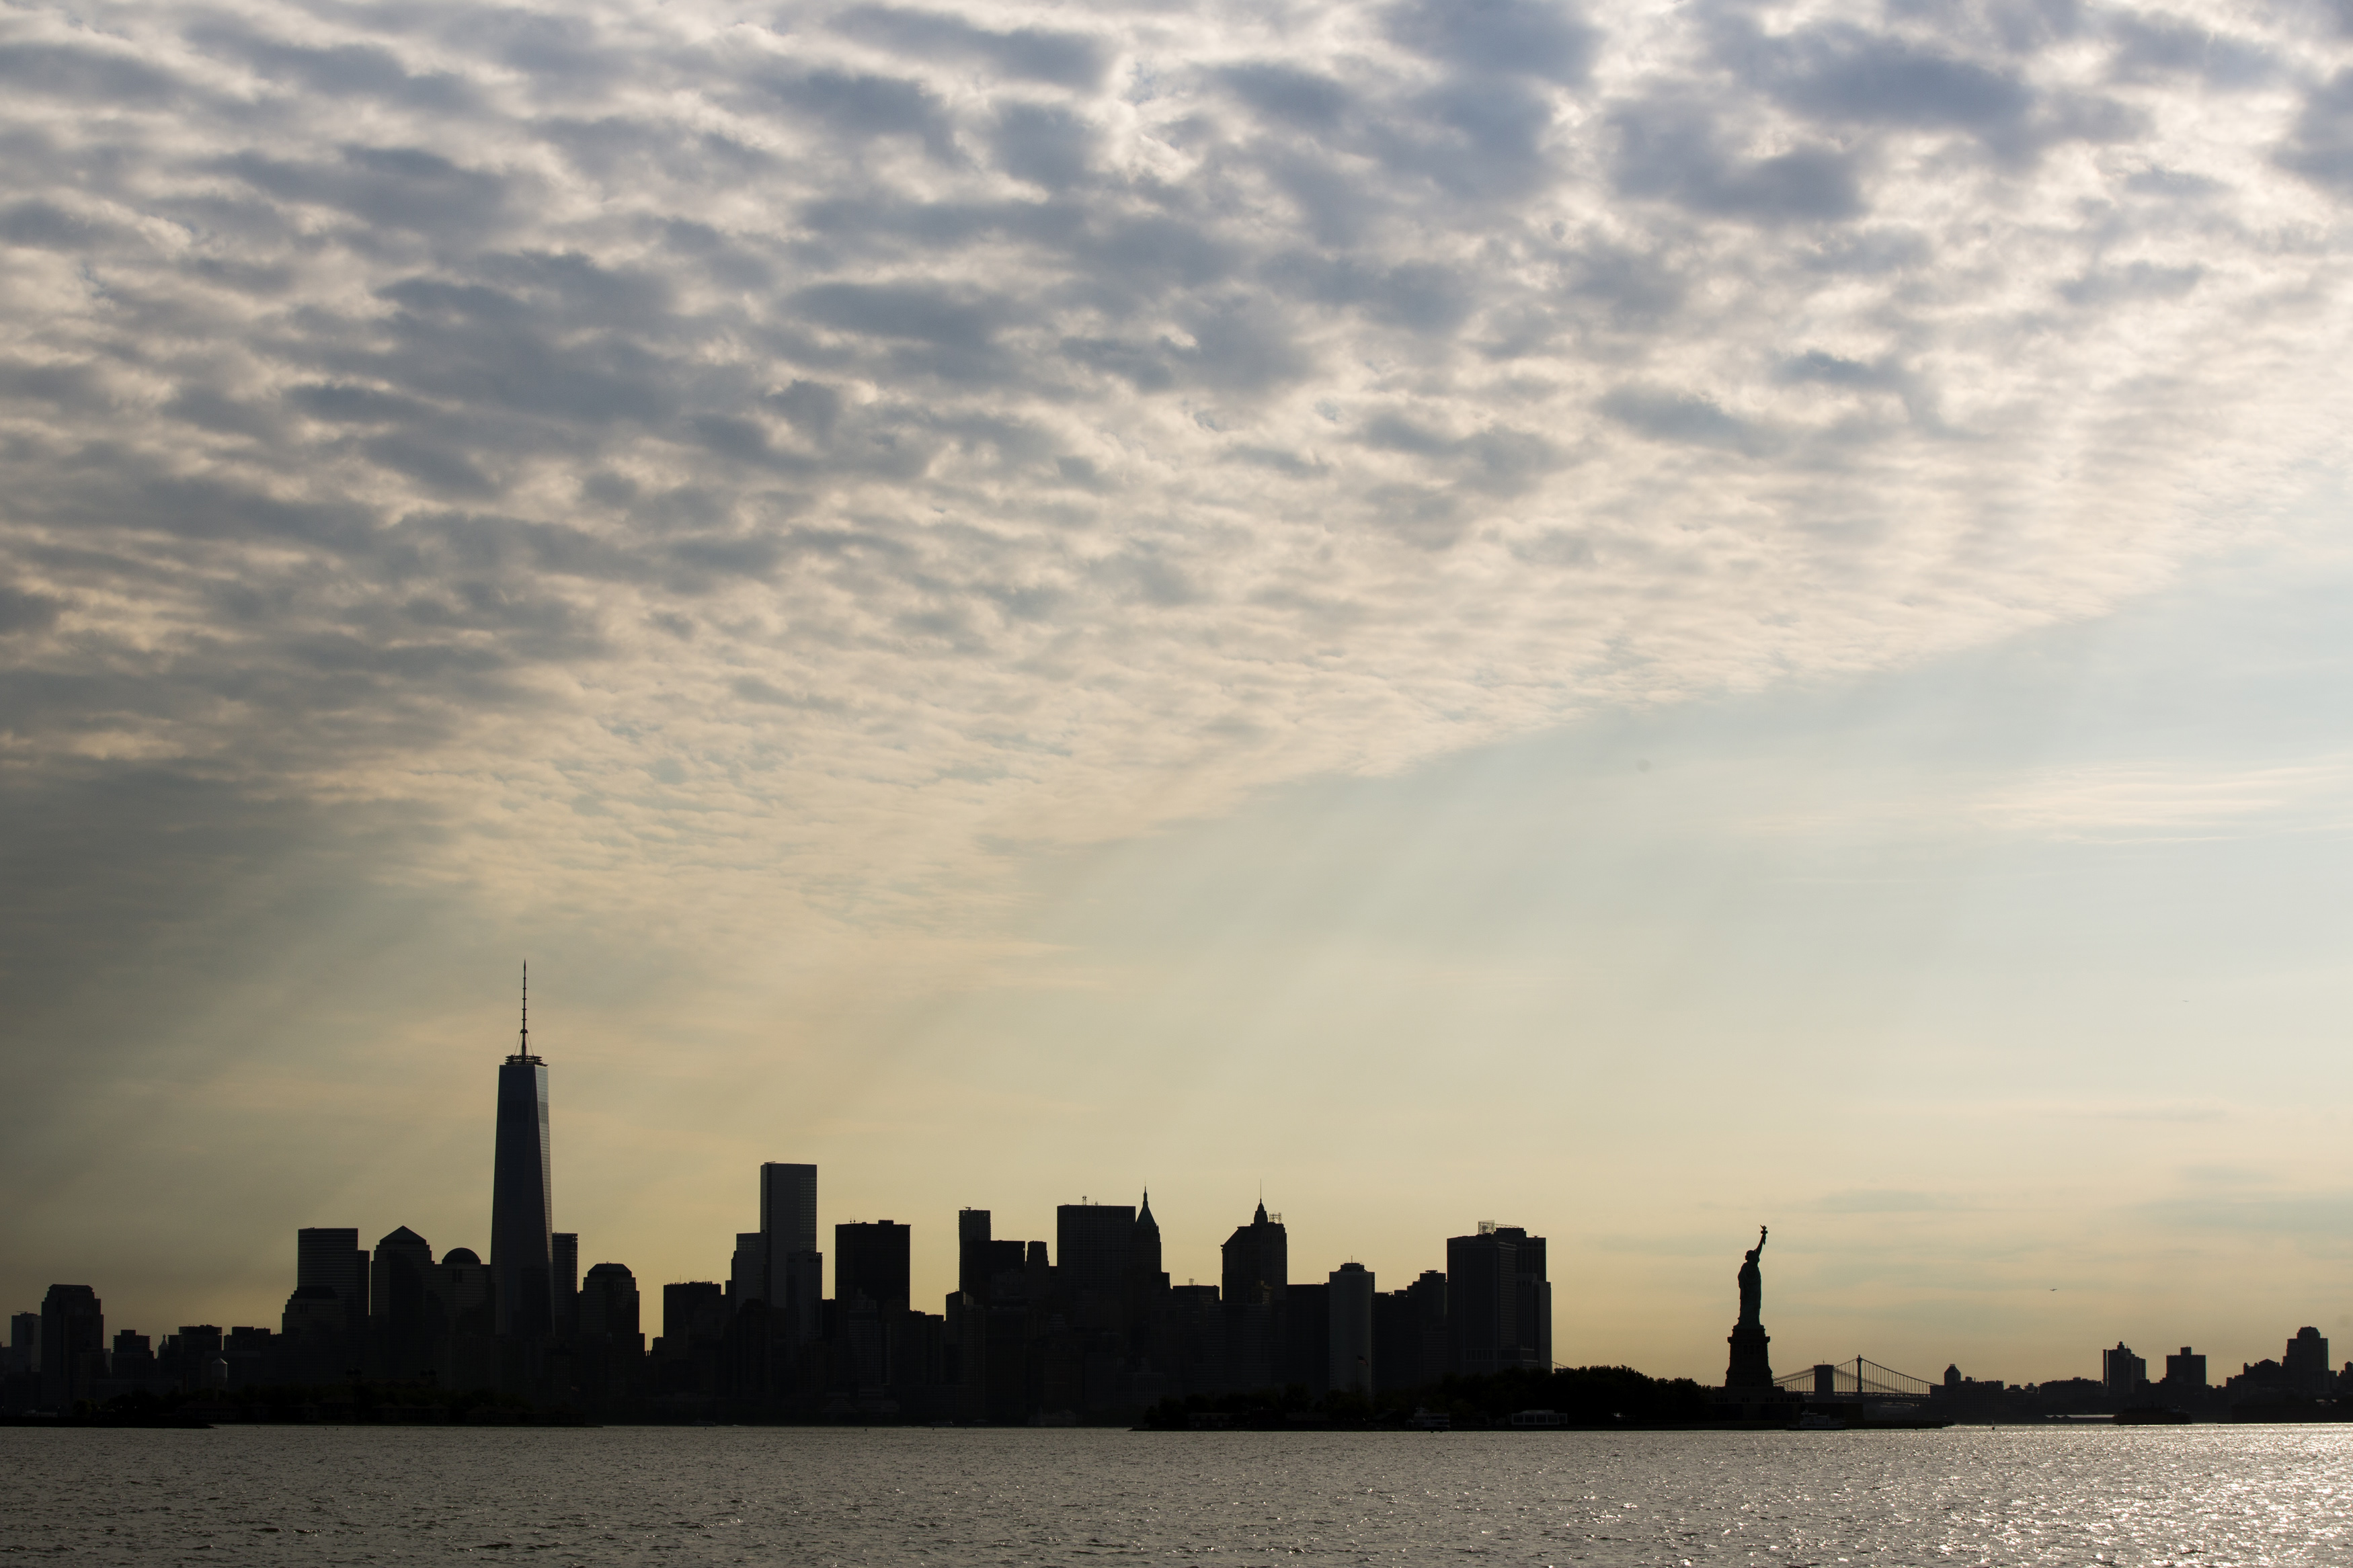 The sun rises behind the Statue of Liberty and the skyline of lower Manhattan in New York